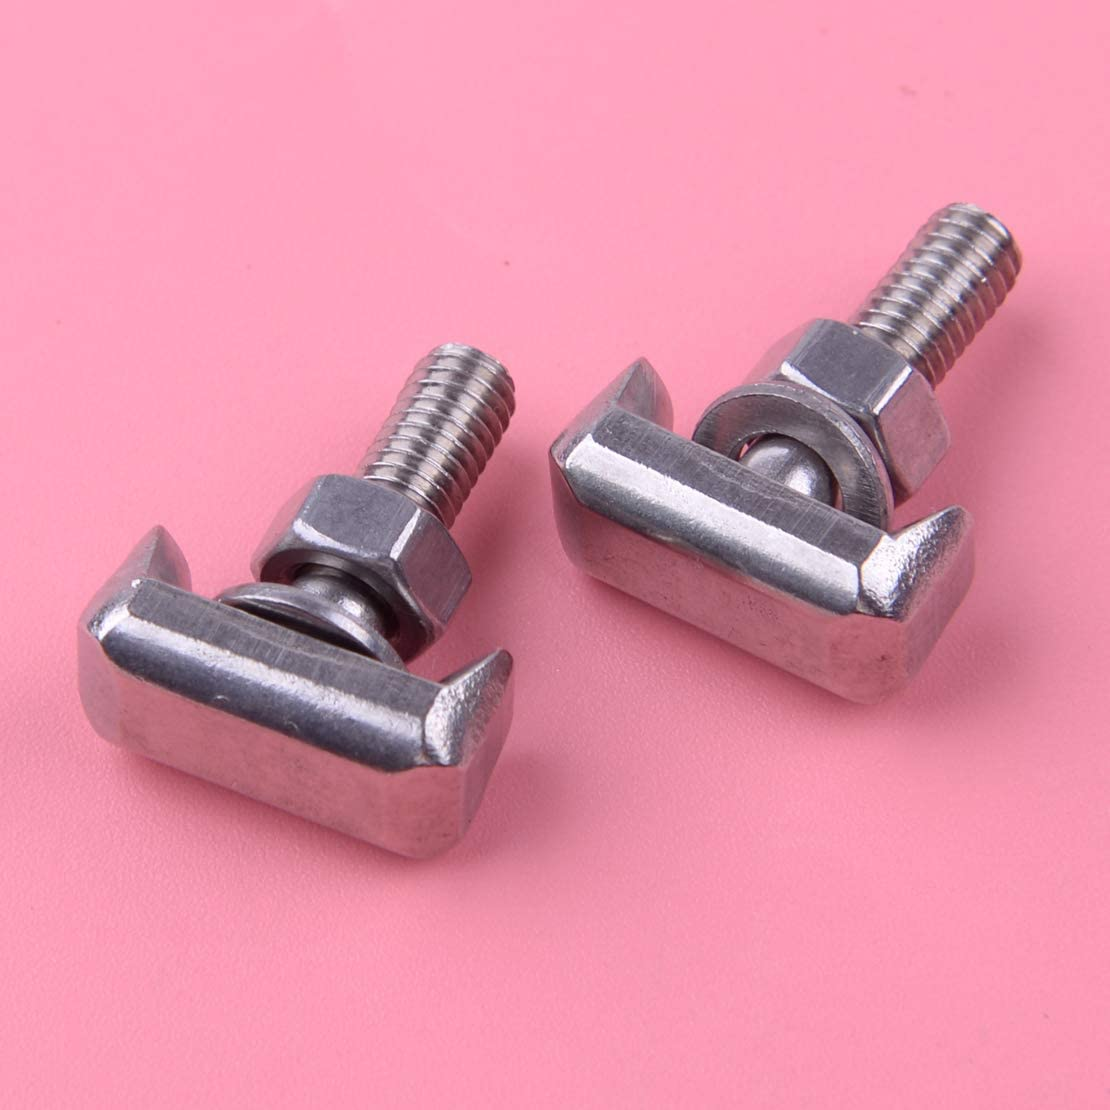 Stainless Steel 2pcs Battery Cable Terminal Connectors Fastener T-Bolt Fit for Audi Cadillac Chevrolet GMC Saturn VW